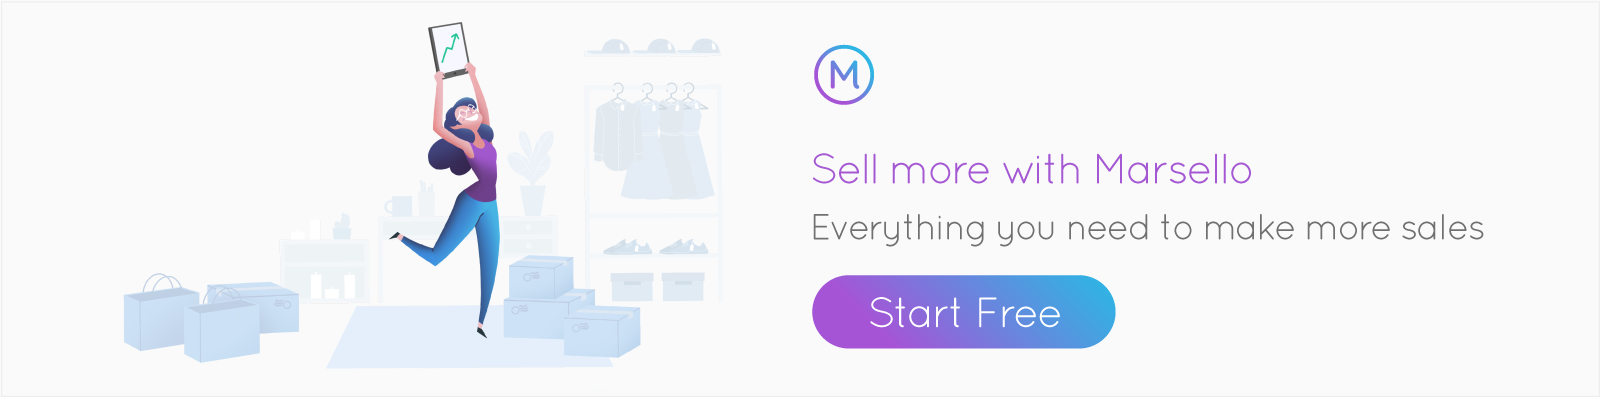 Sell more with Marsello